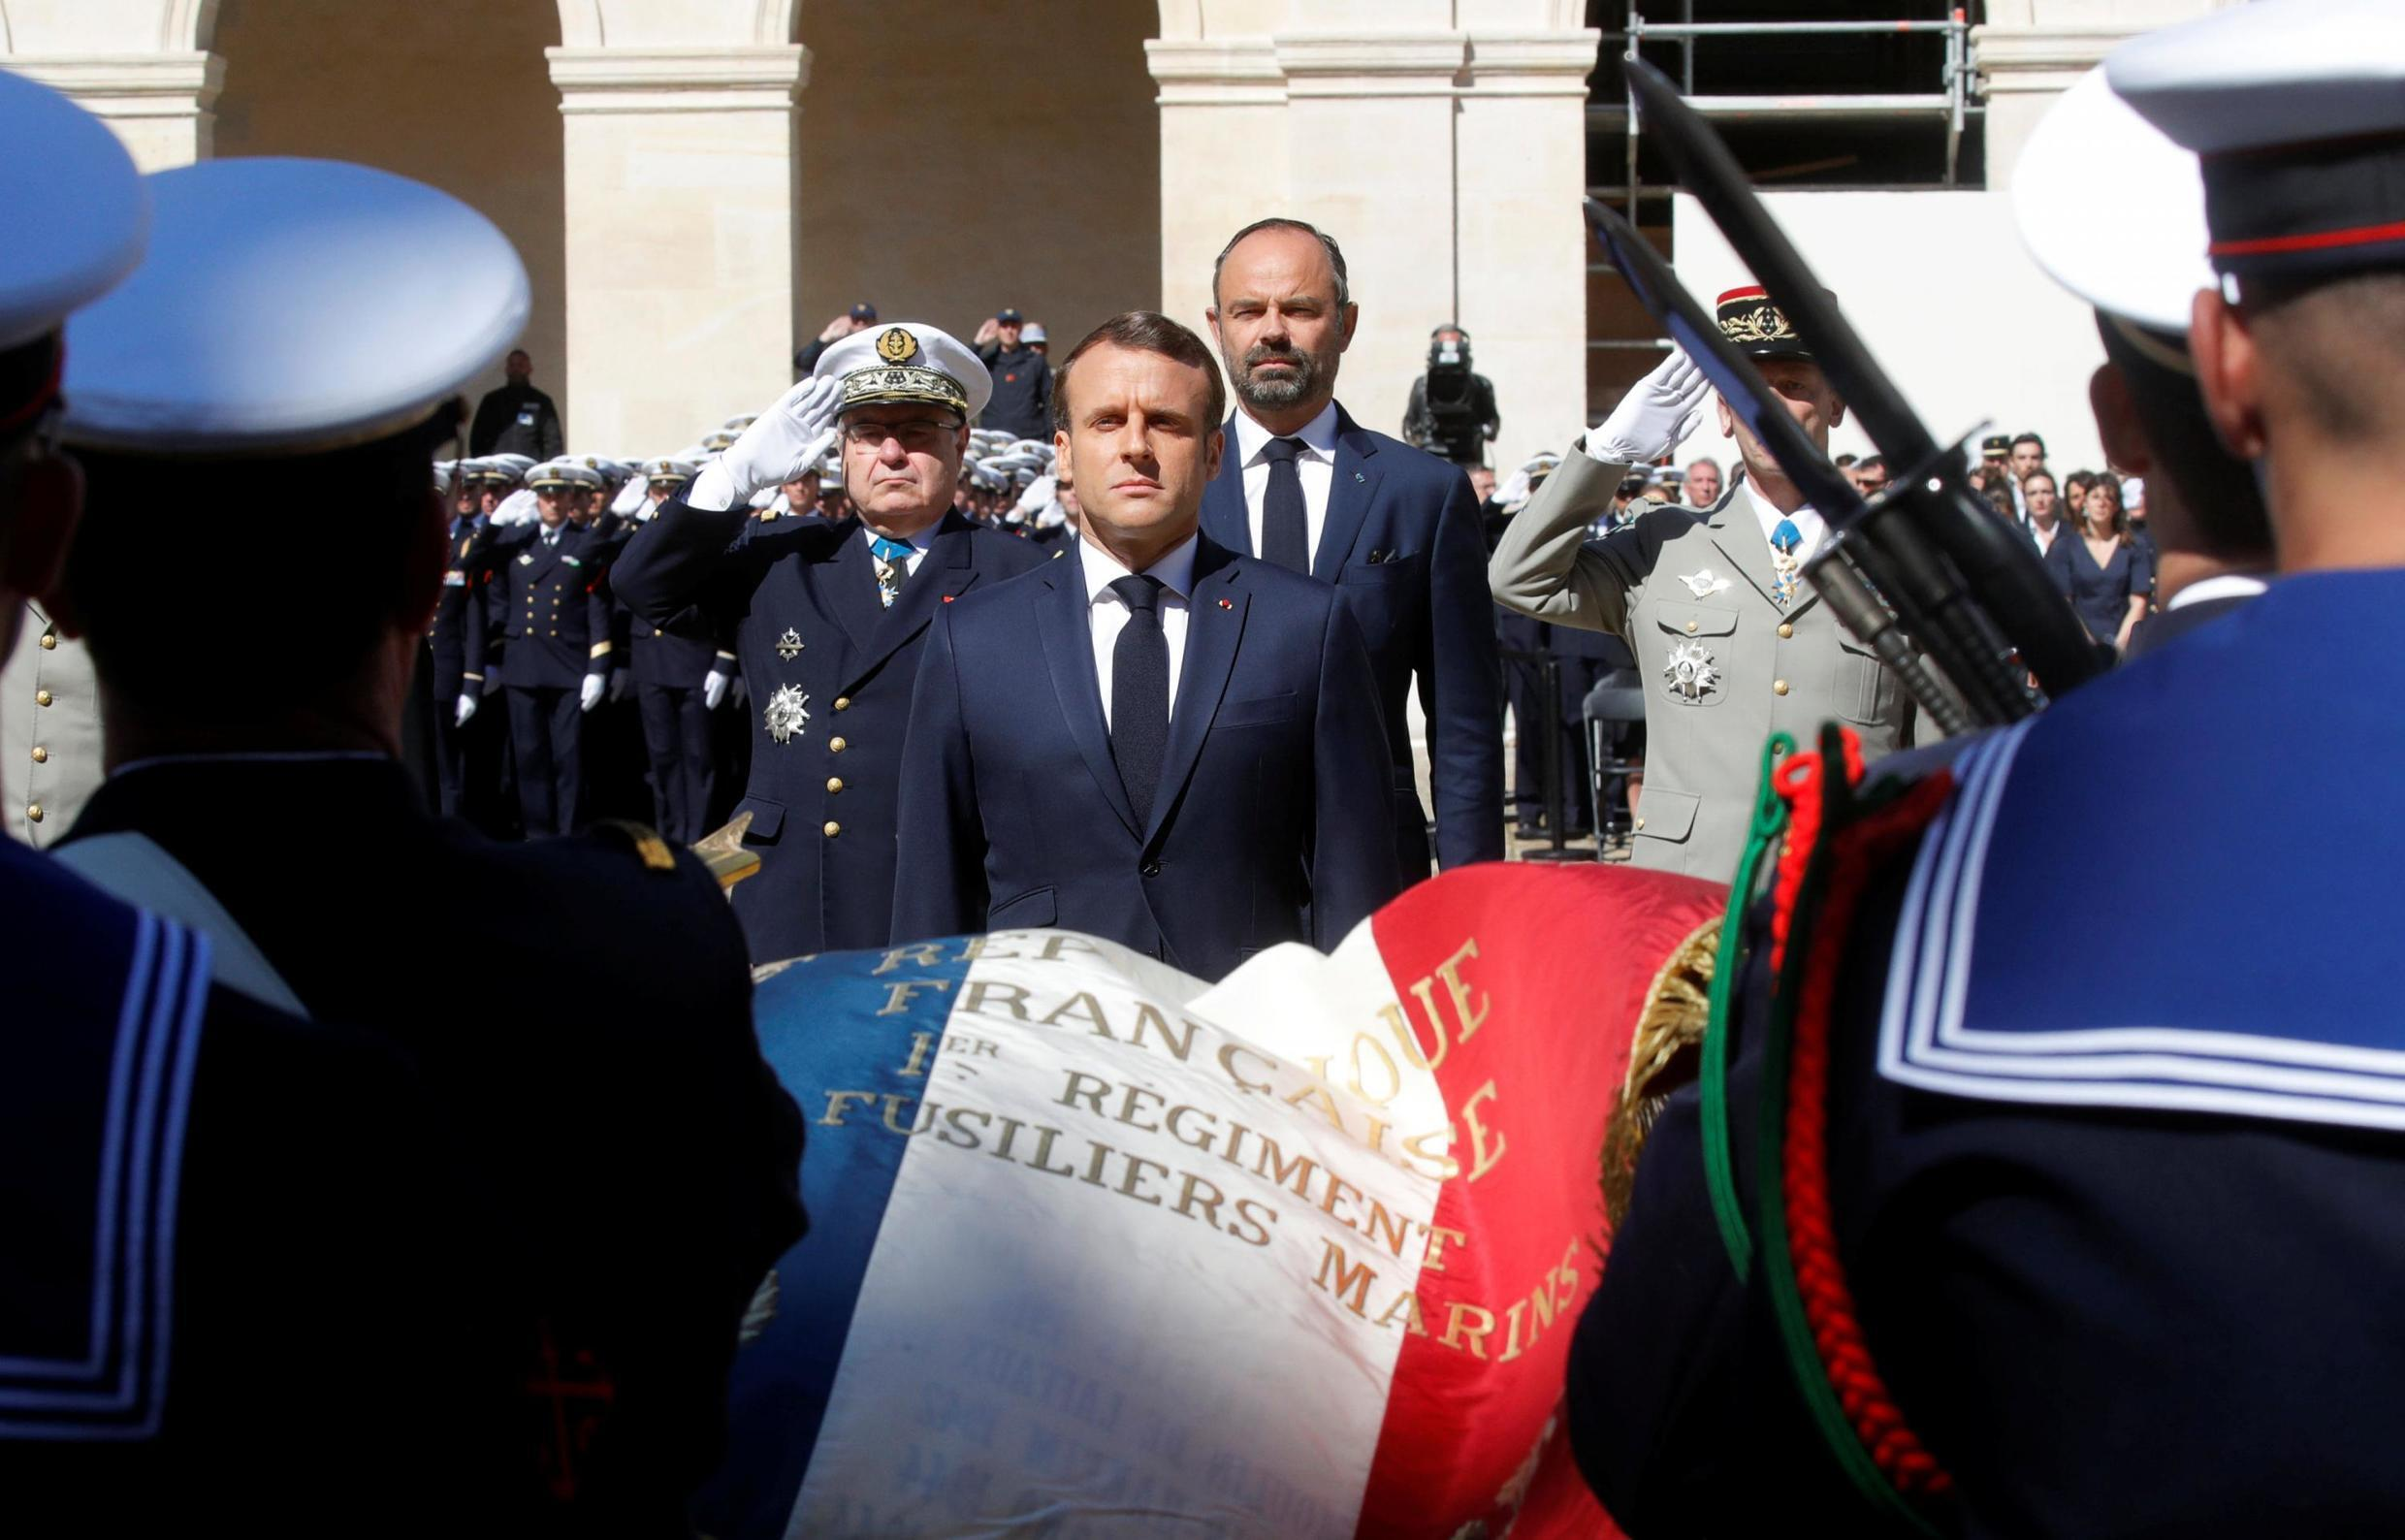 French President Emmanuel Macron honors the late special forces soldiers Cedric de Pierrepont and Alain Bertoncello, who were killed in a night-time rescue of four foreign hostages including two French citizens in Burkina Faso last week.